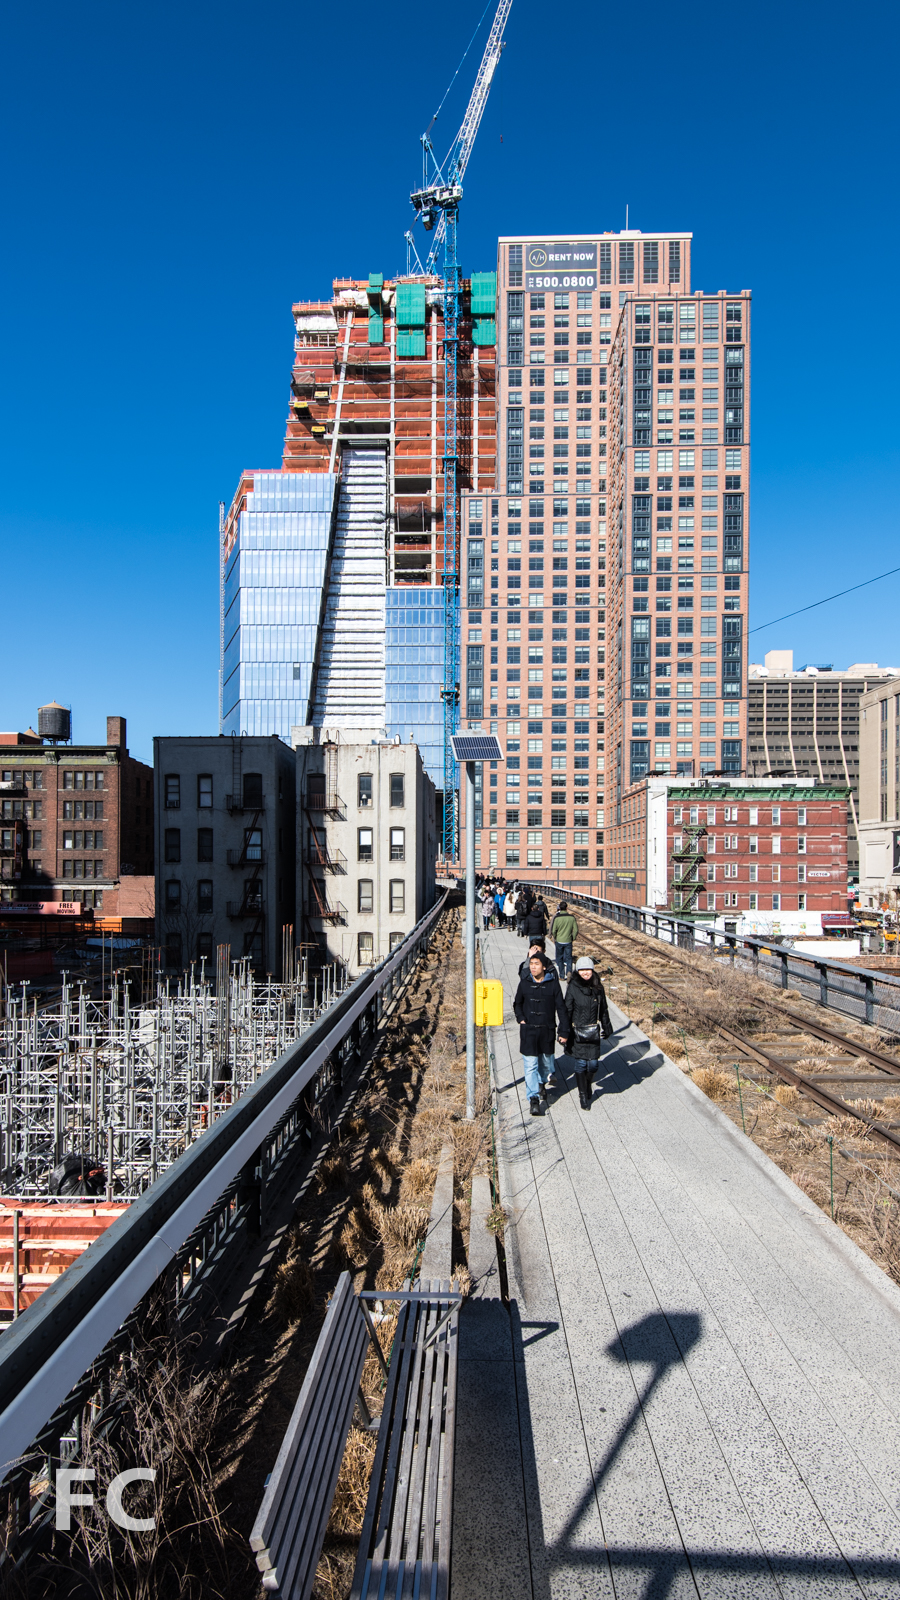 South facade of 10 Hudson Yards (left) and the Abington House (right) from the High Line park.